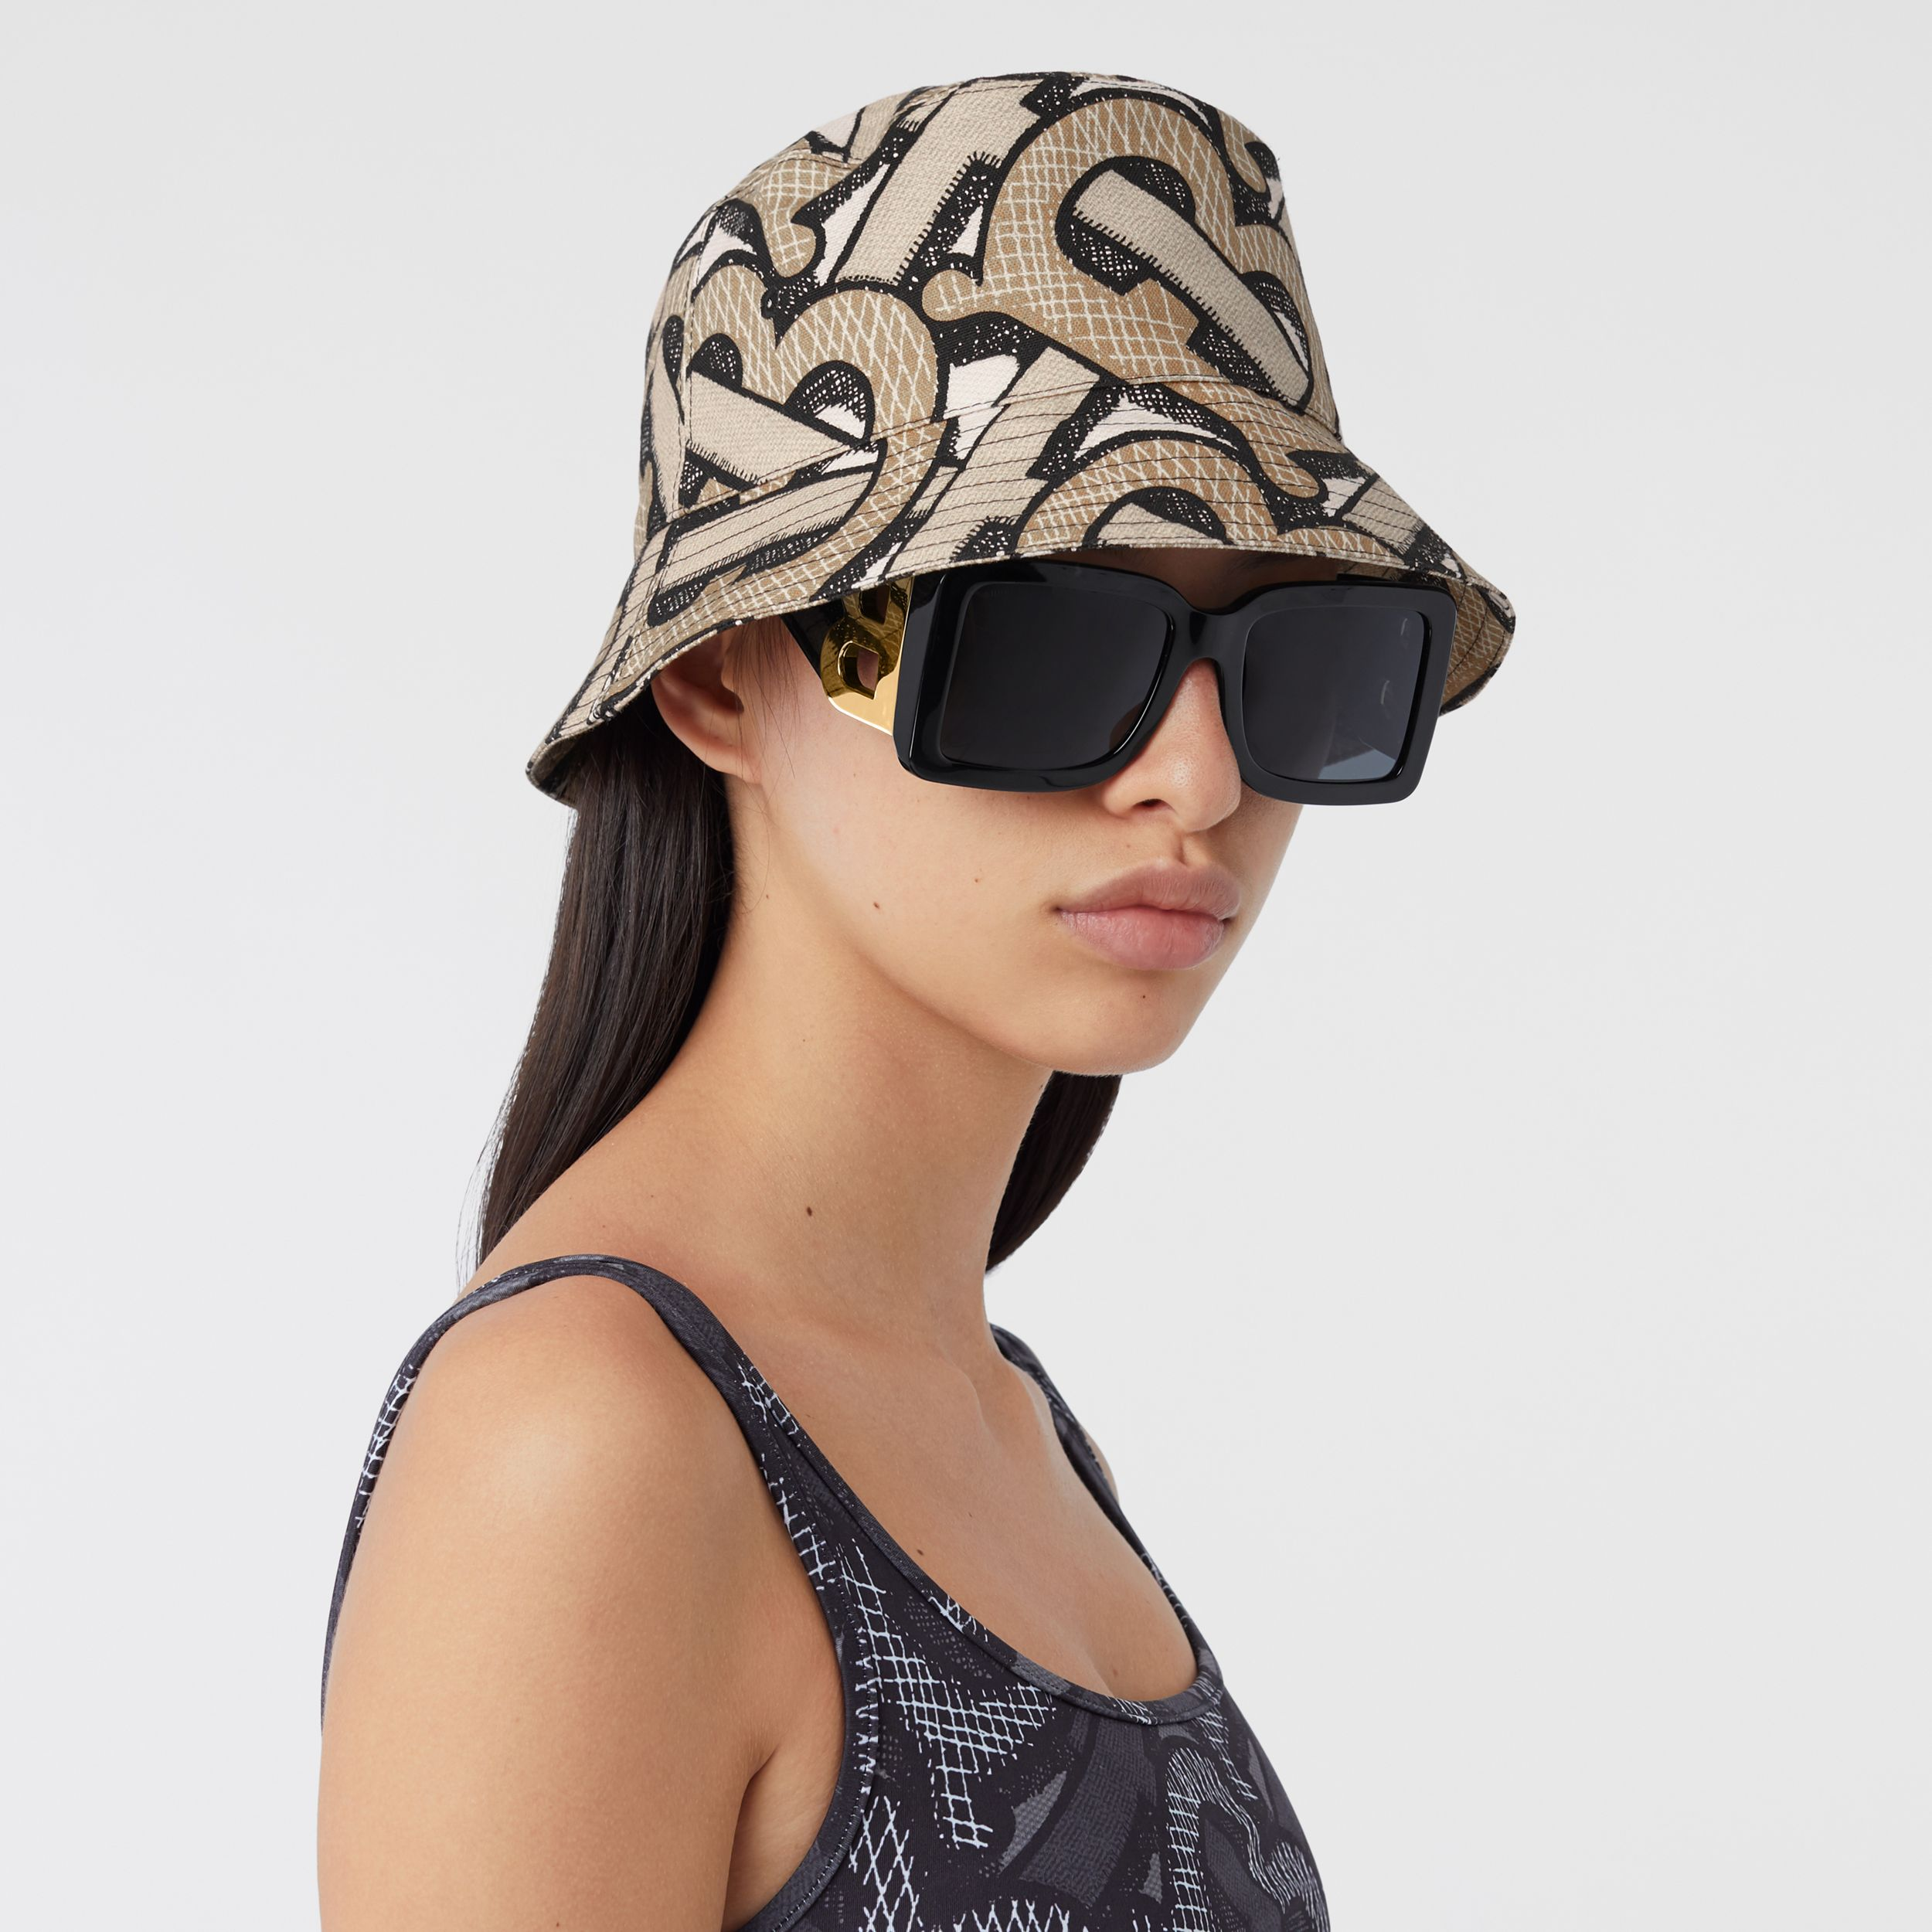 Monogram Print Cotton Canvas Bucket Hat in Dark Beige | Burberry - 3